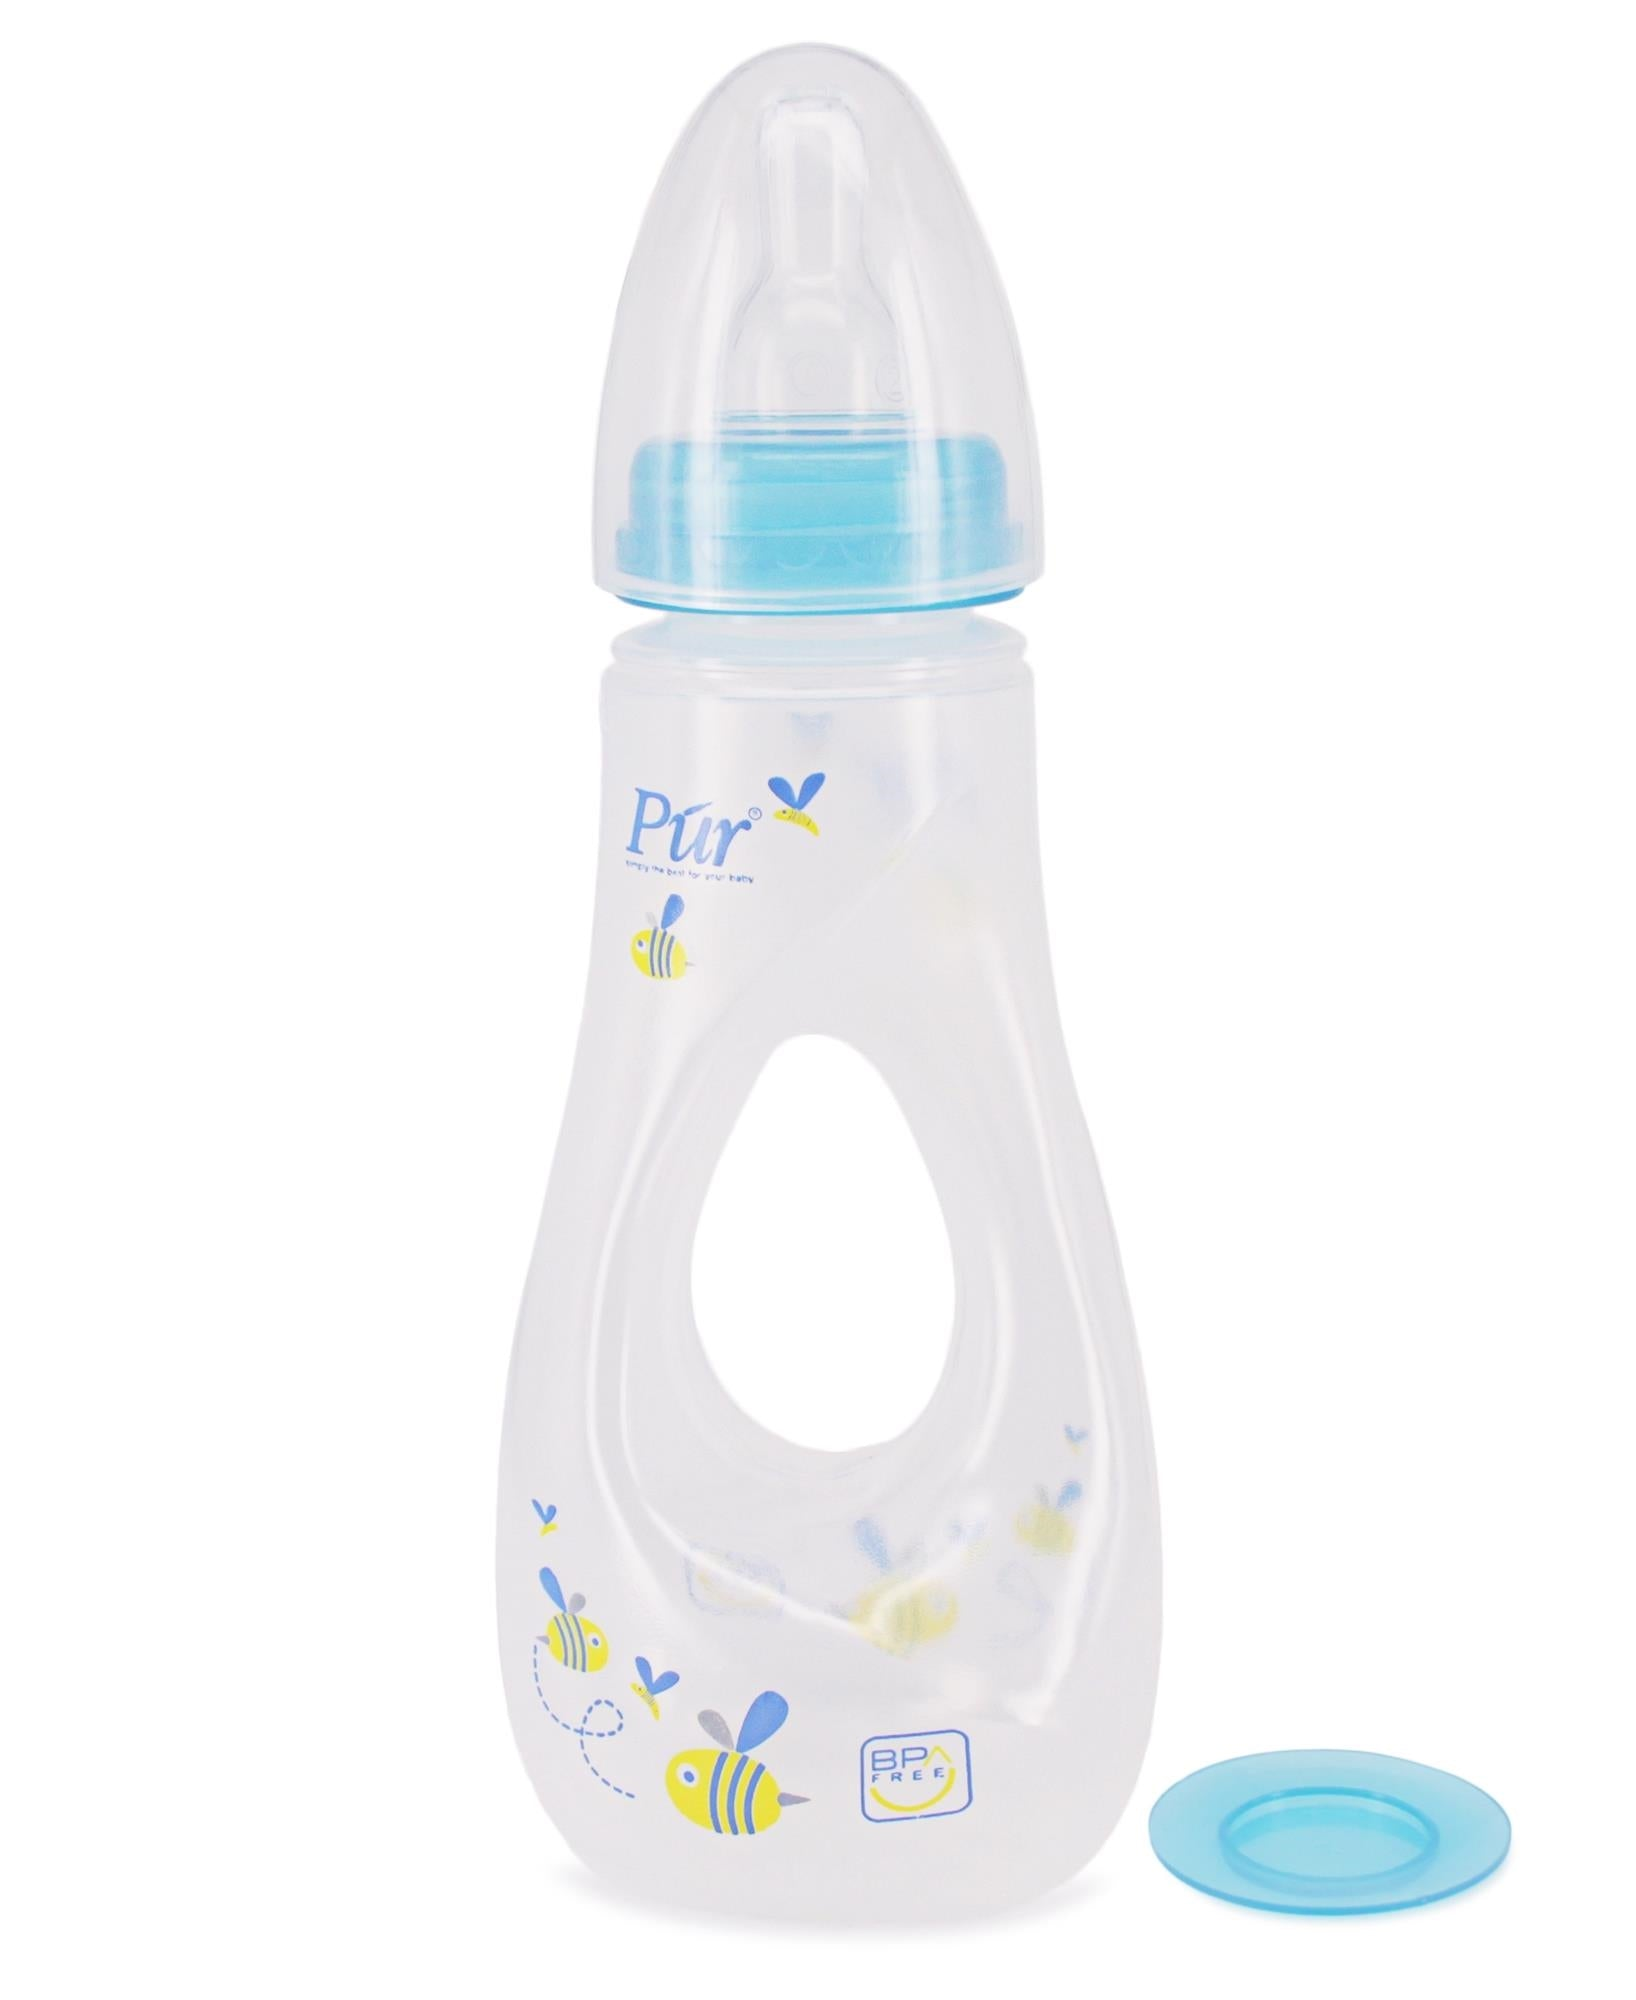 Gripper Feeding Bottle - Blue